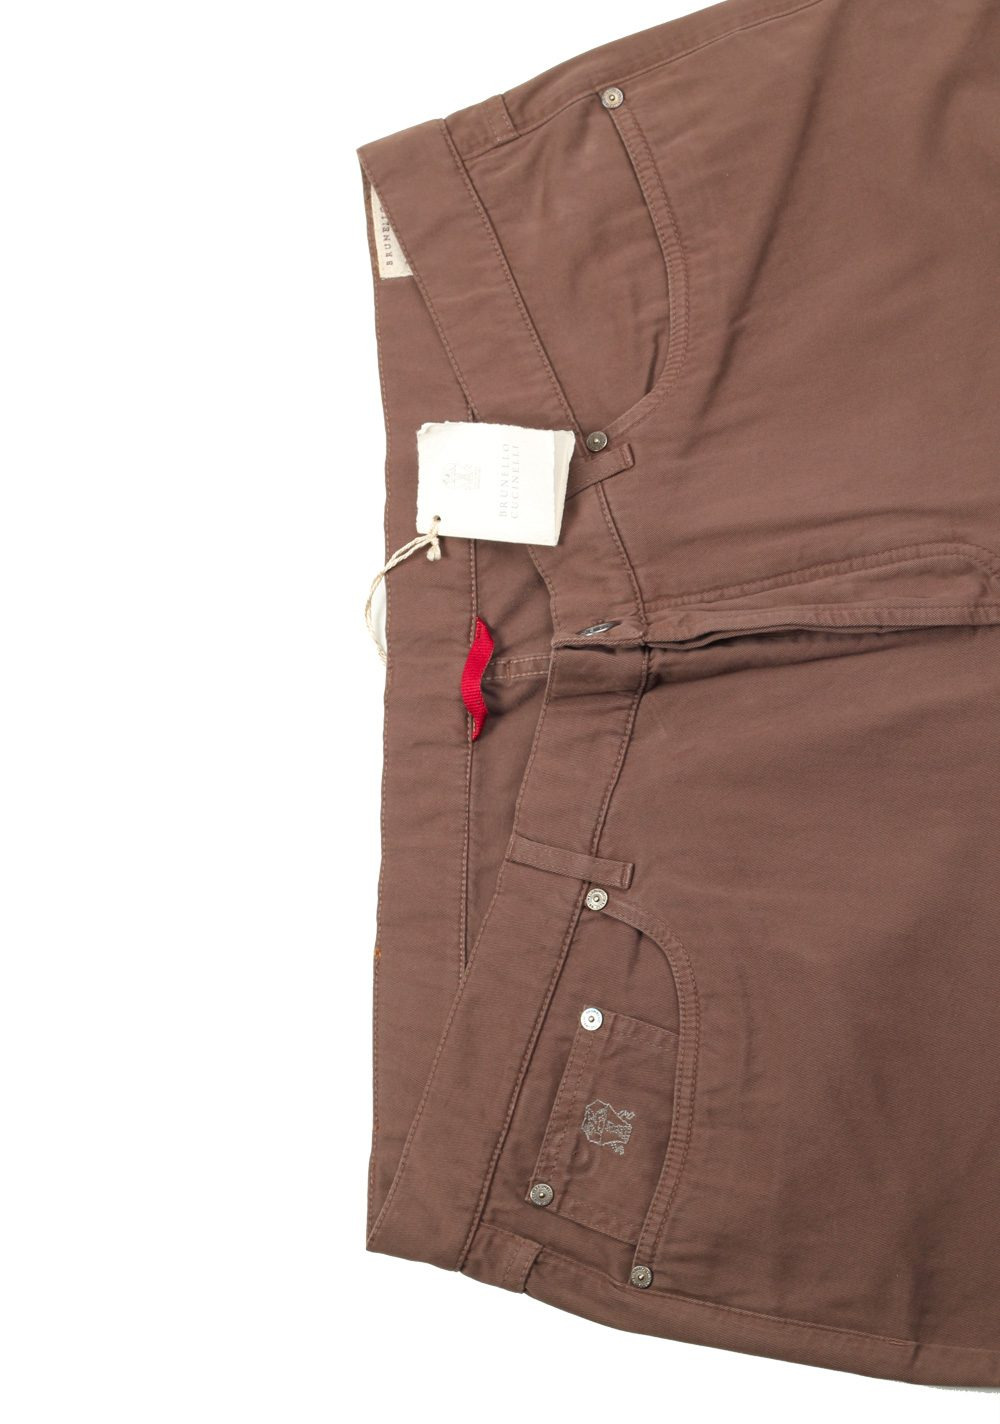 Brunello Cucinelli Brown Trousers Size 60 / 44 U.S. | Costume Limité